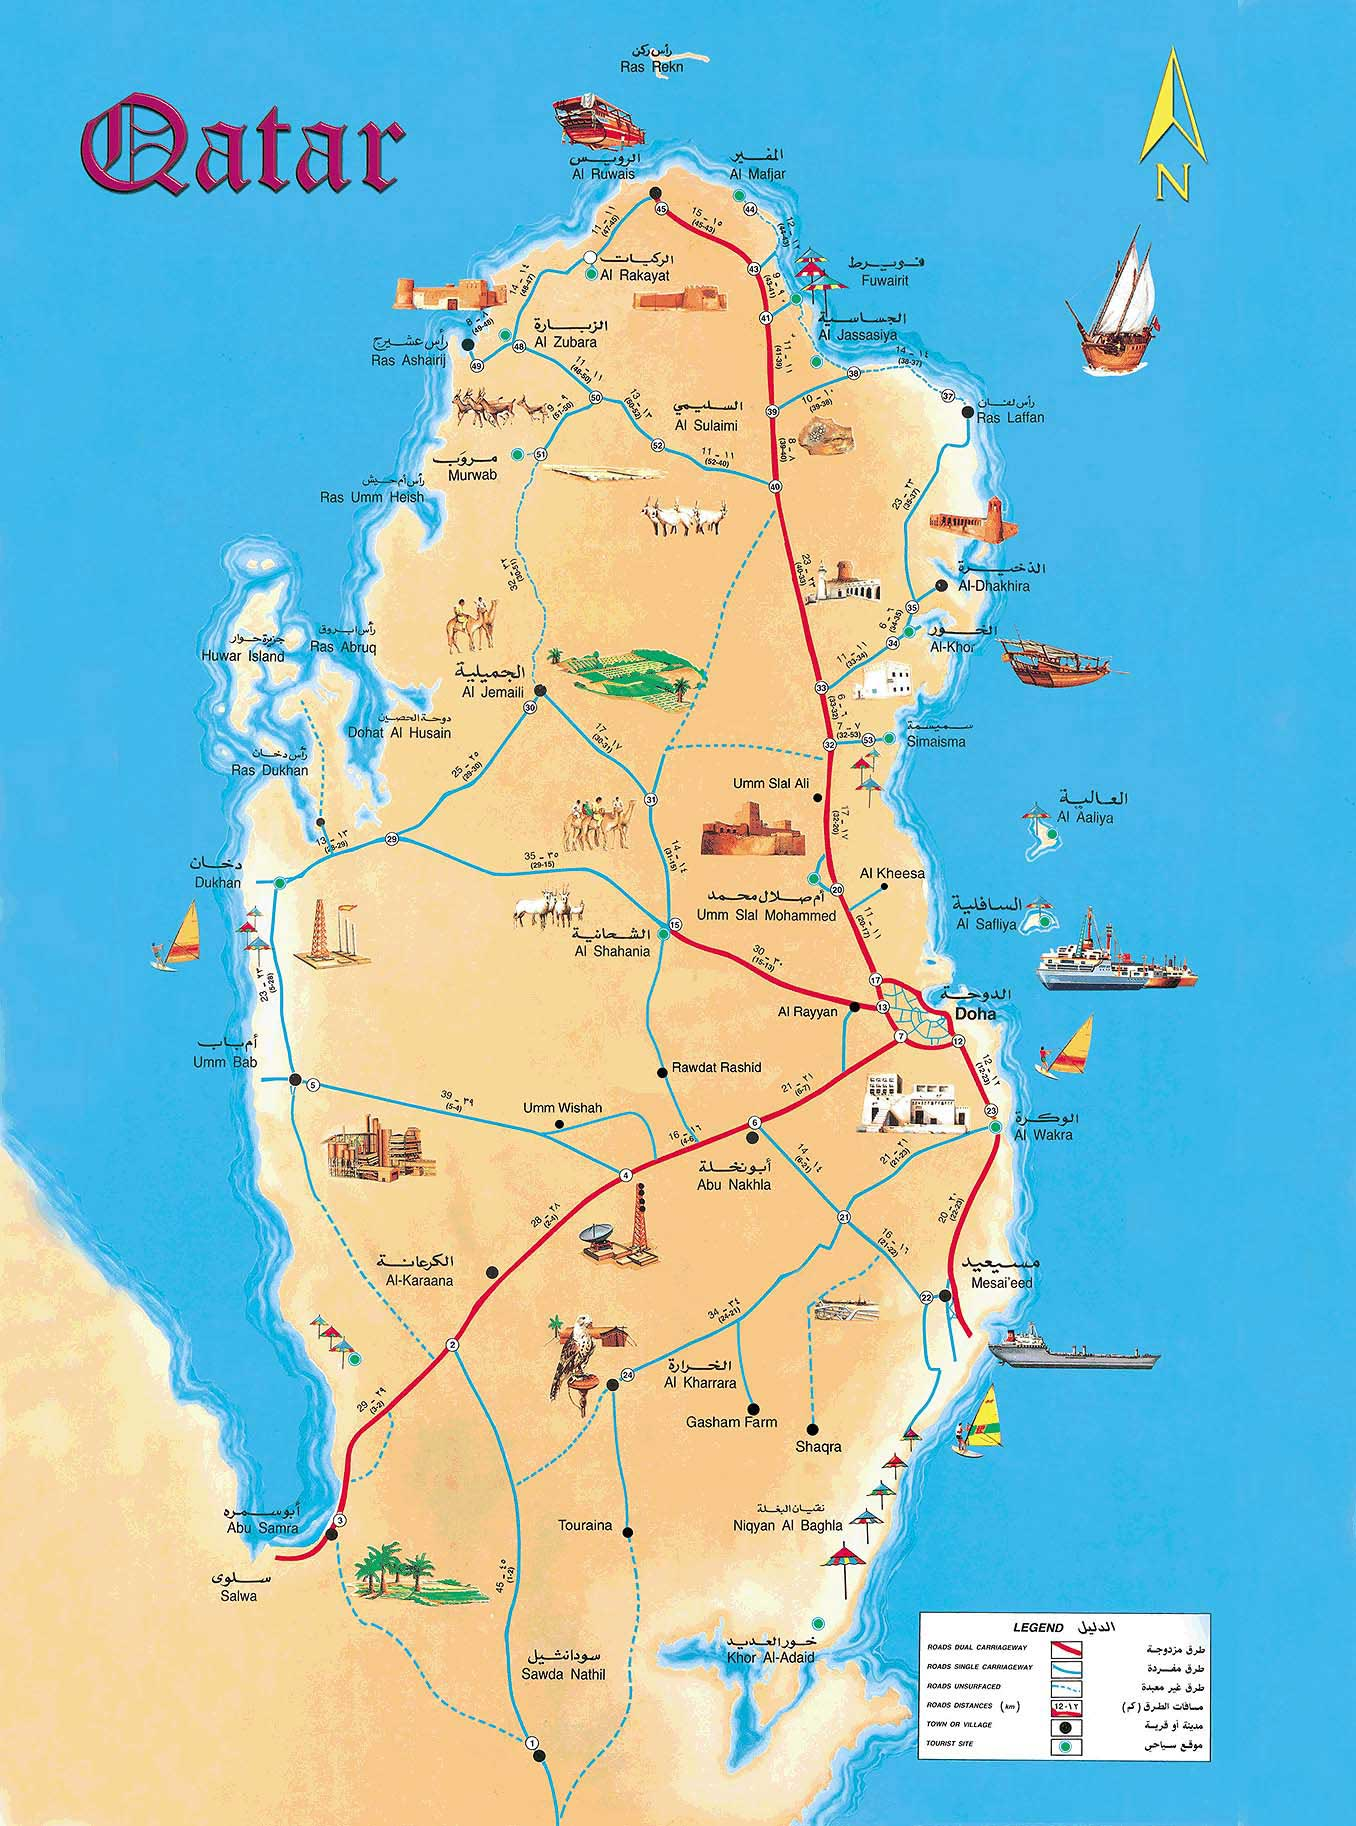 Qatar Tourist Map • Mapsof.net